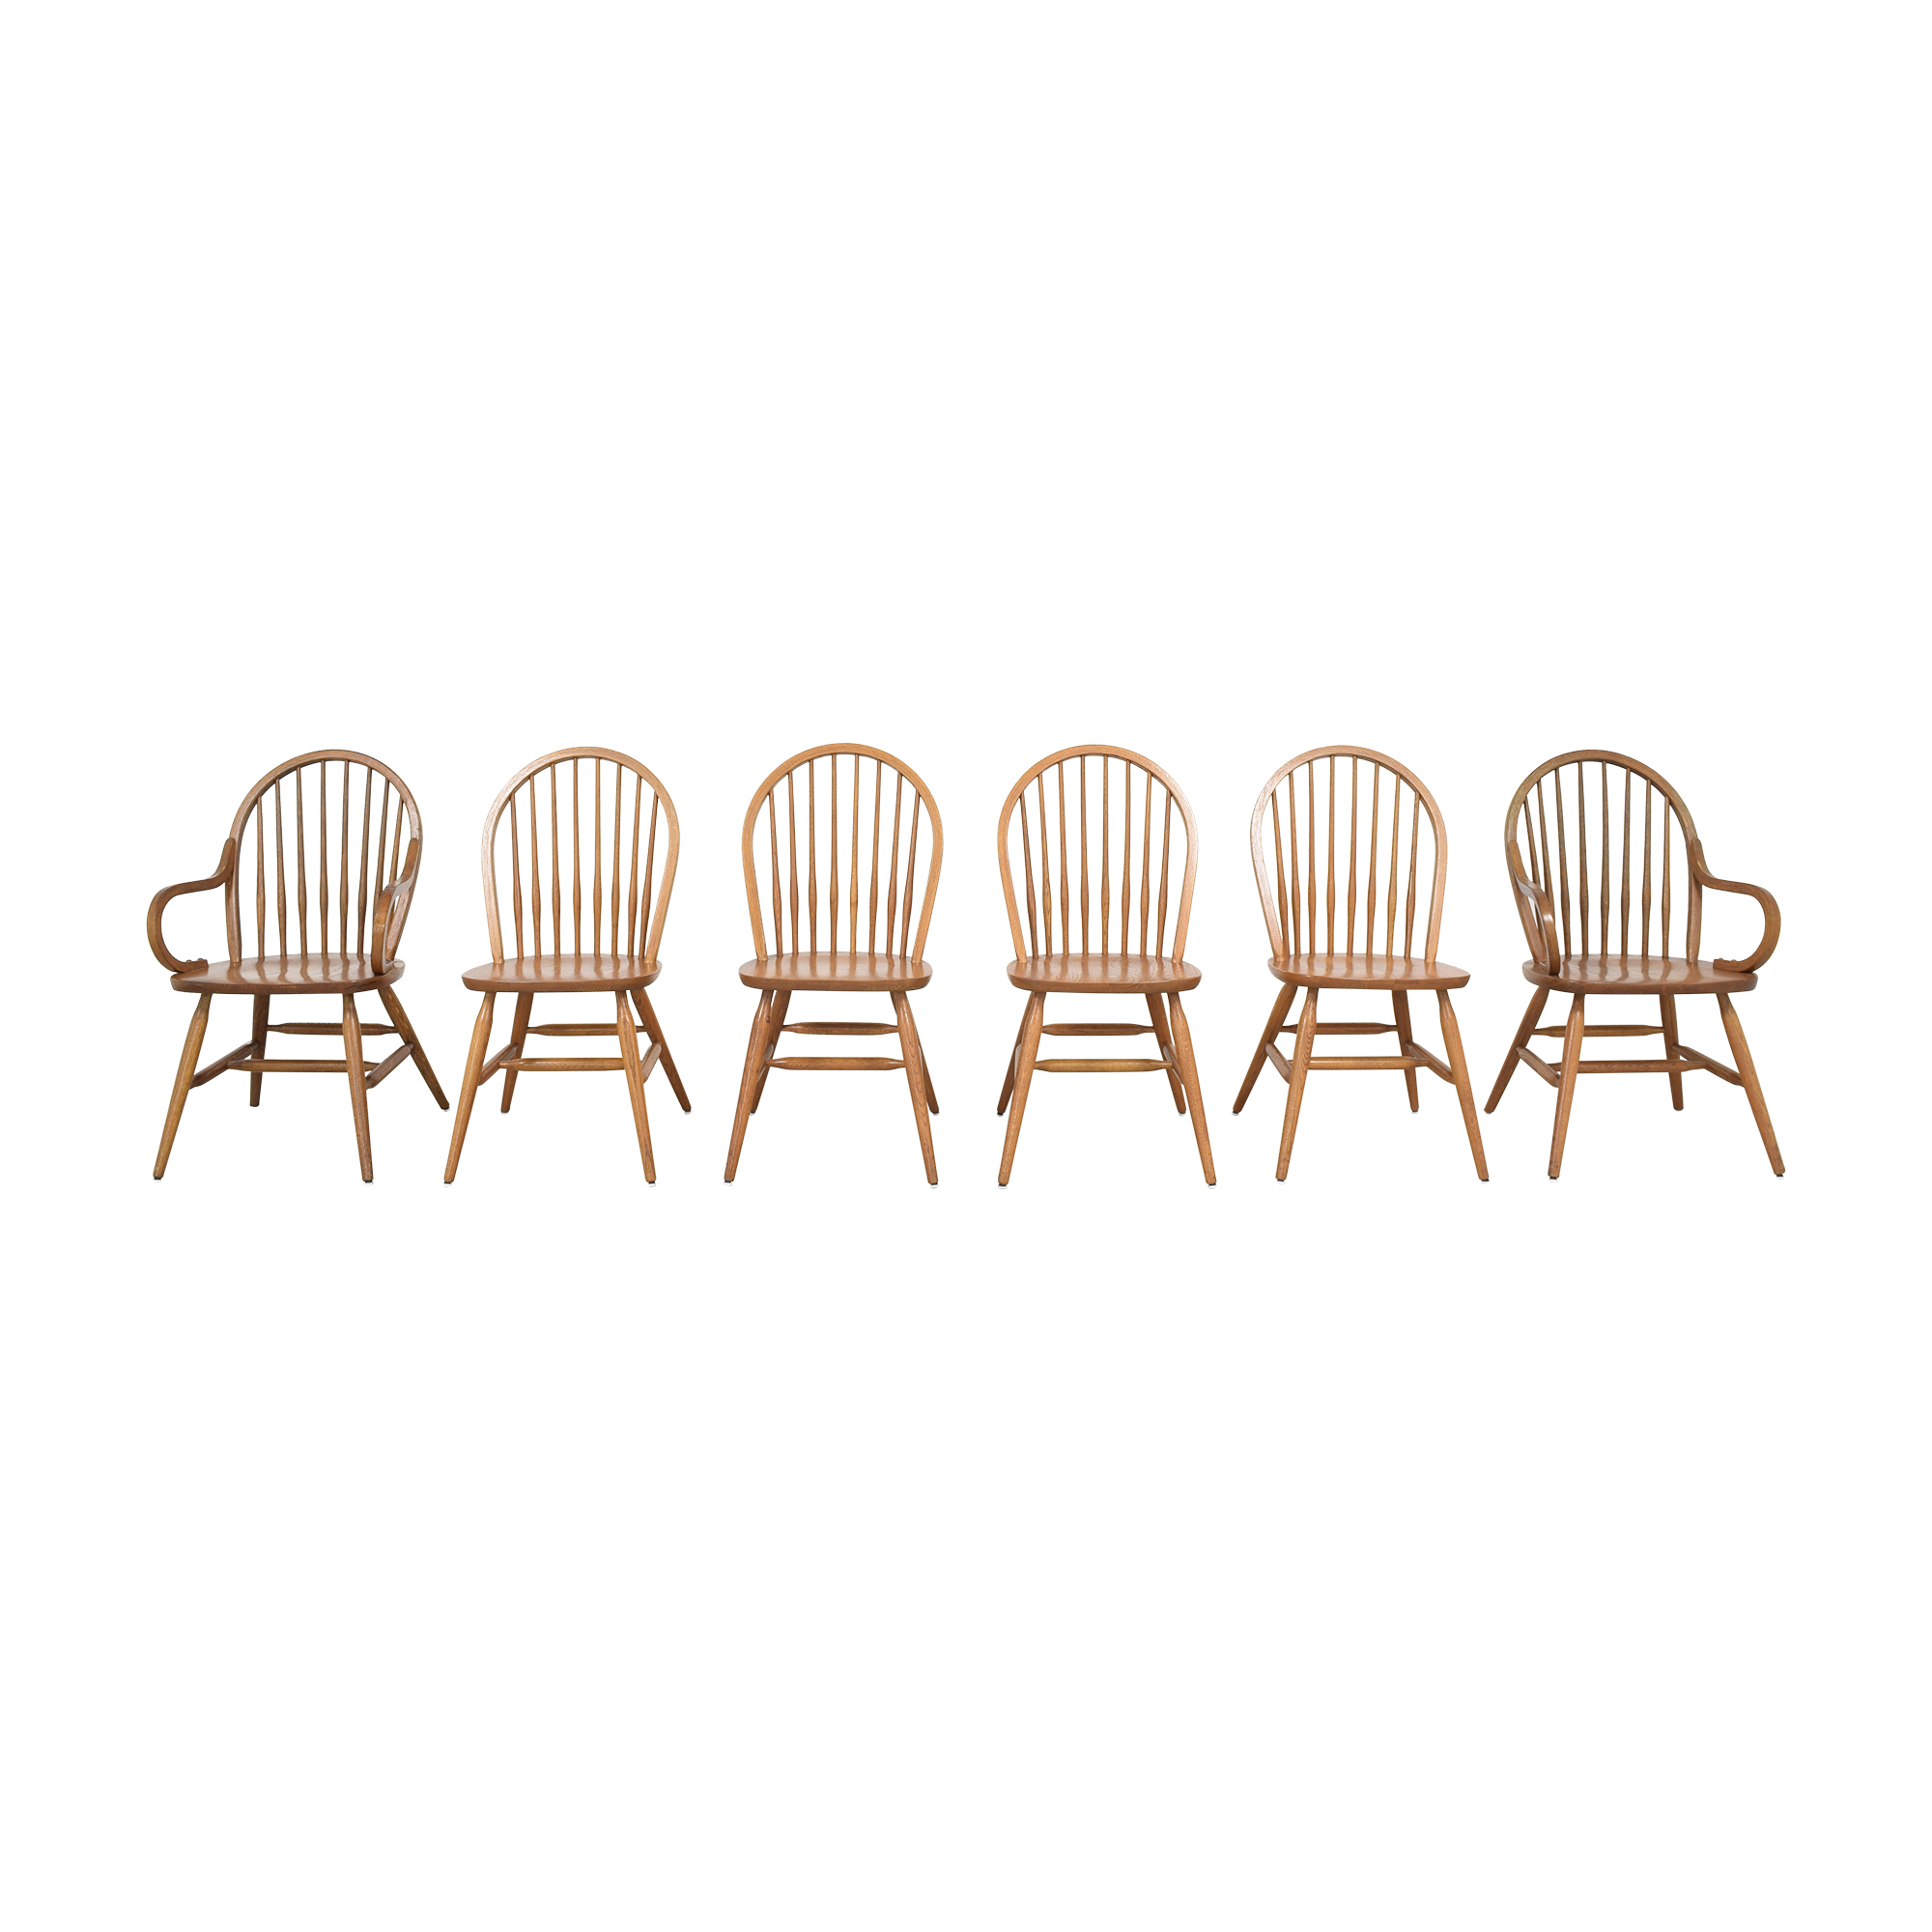 Keller Keller Dining Chairs nyc